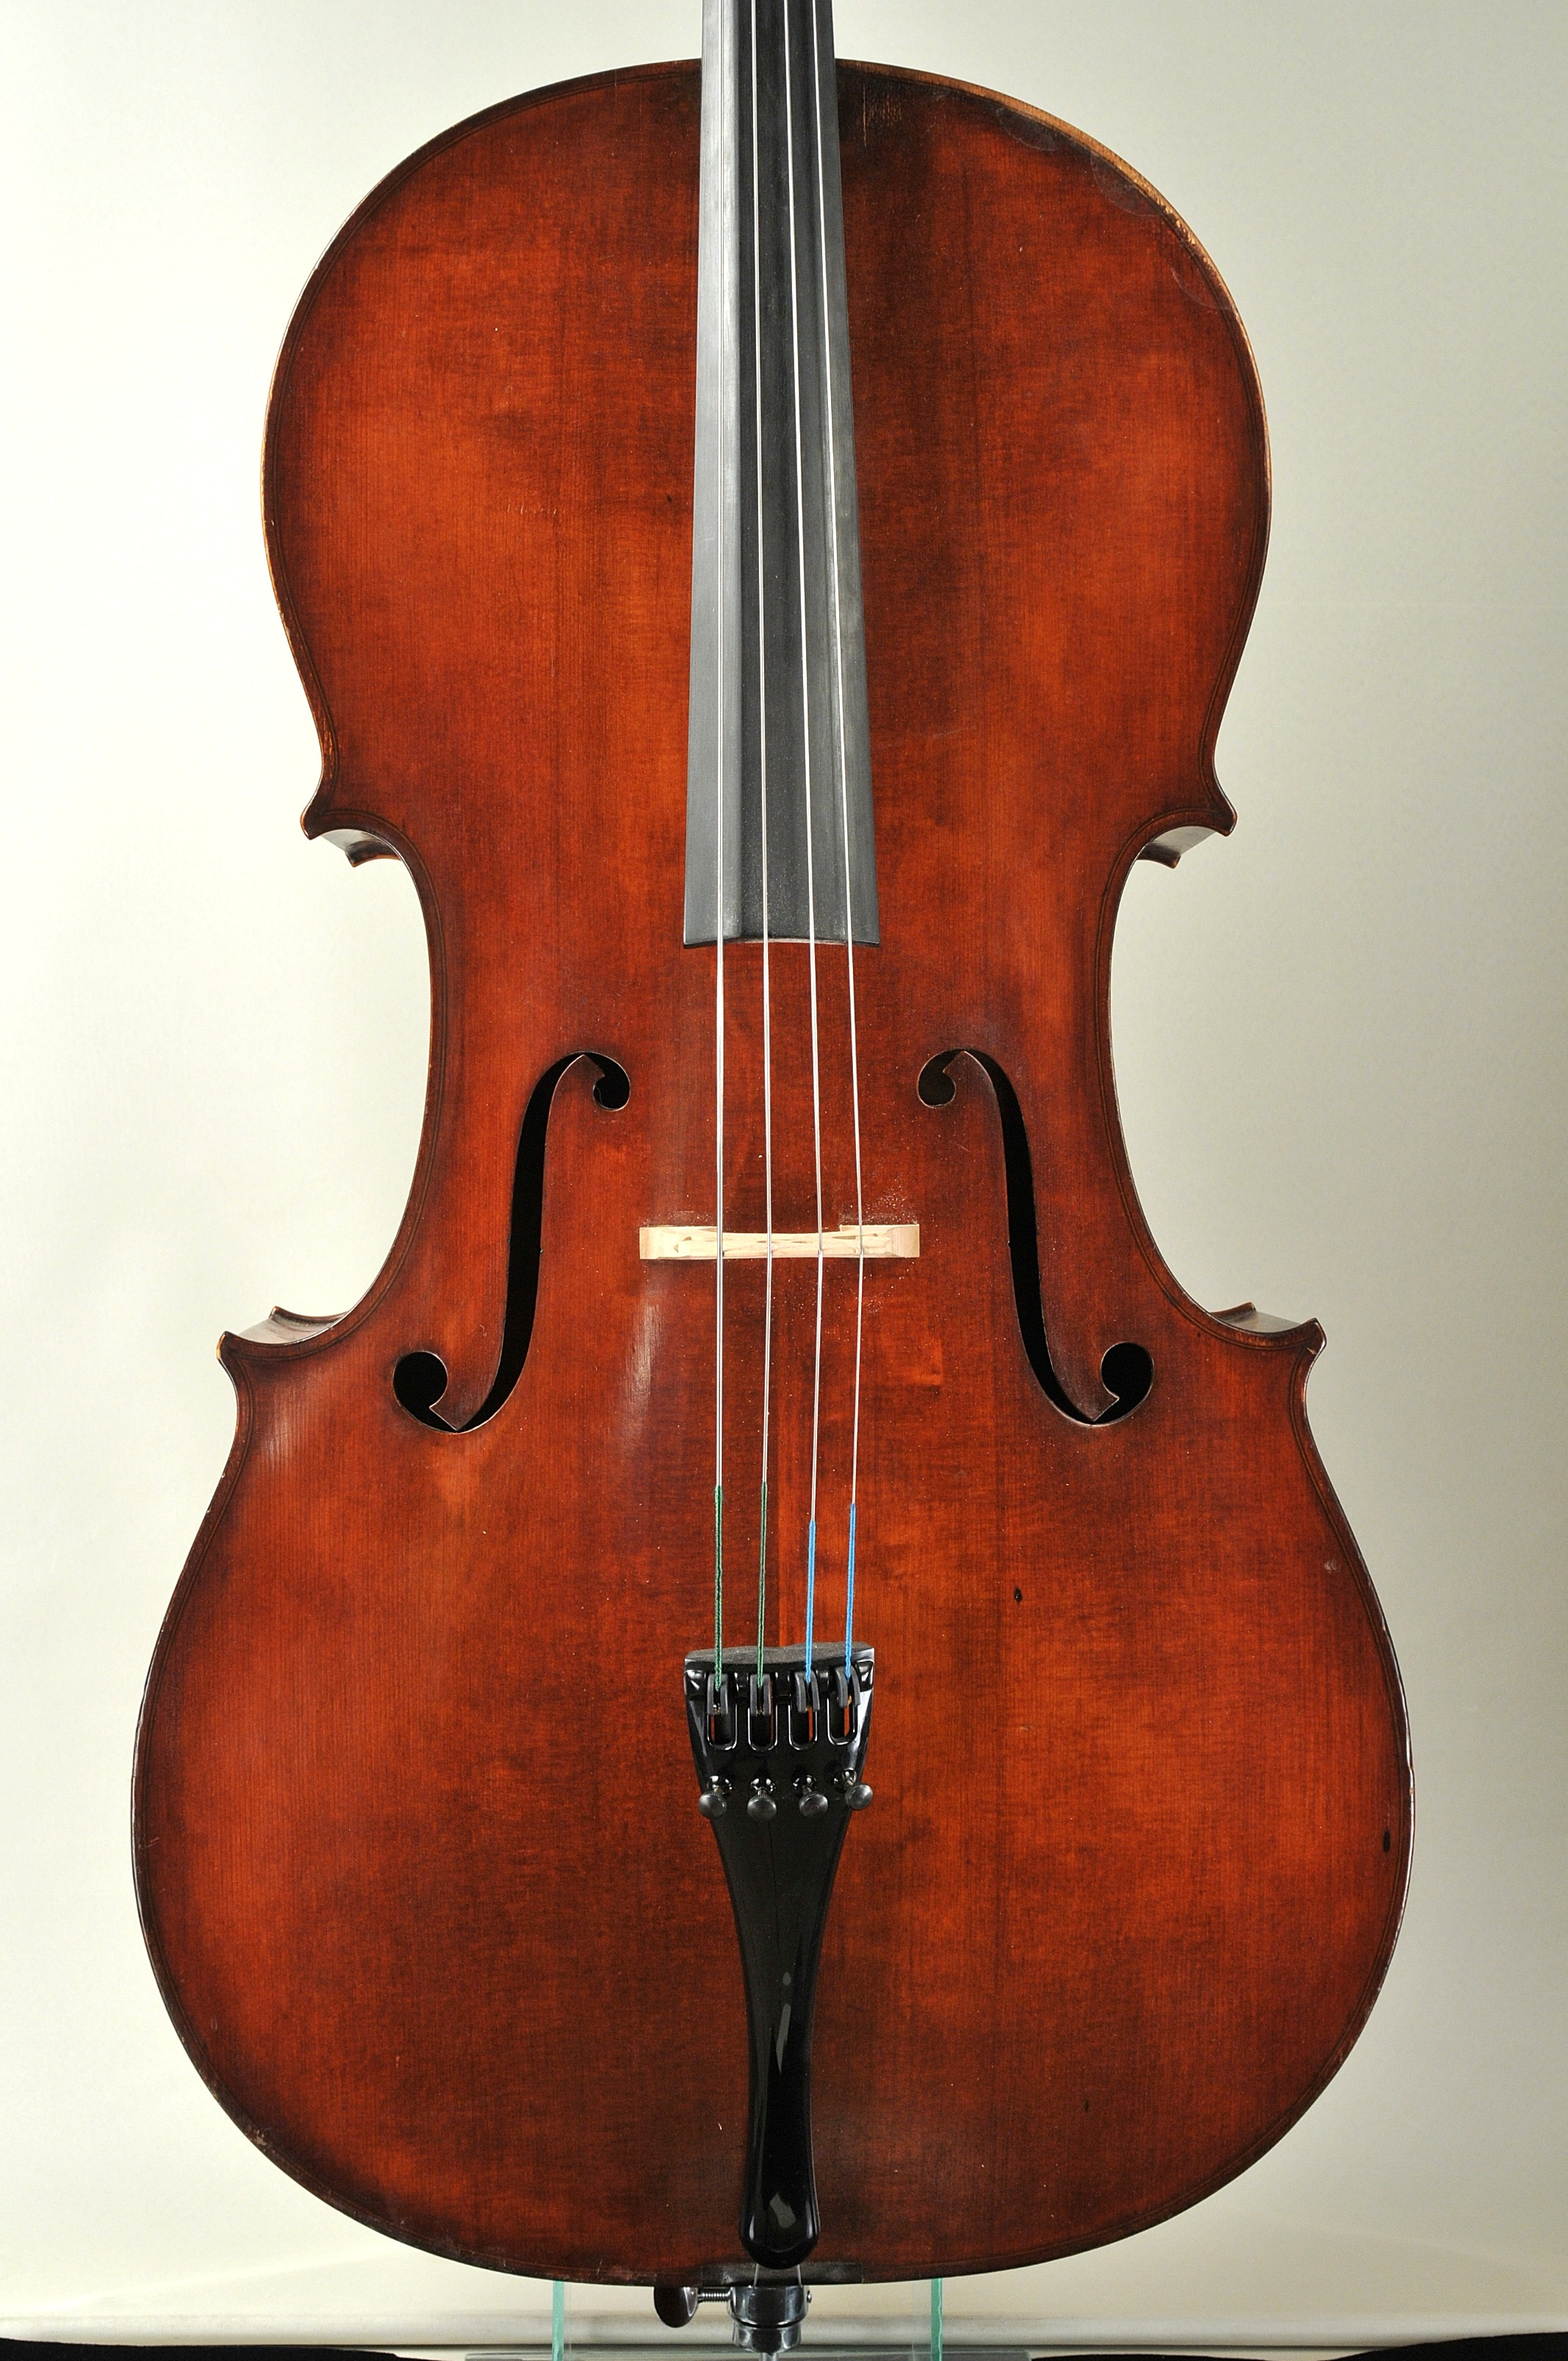 Richard Weichold from Drezden 1910 Cello